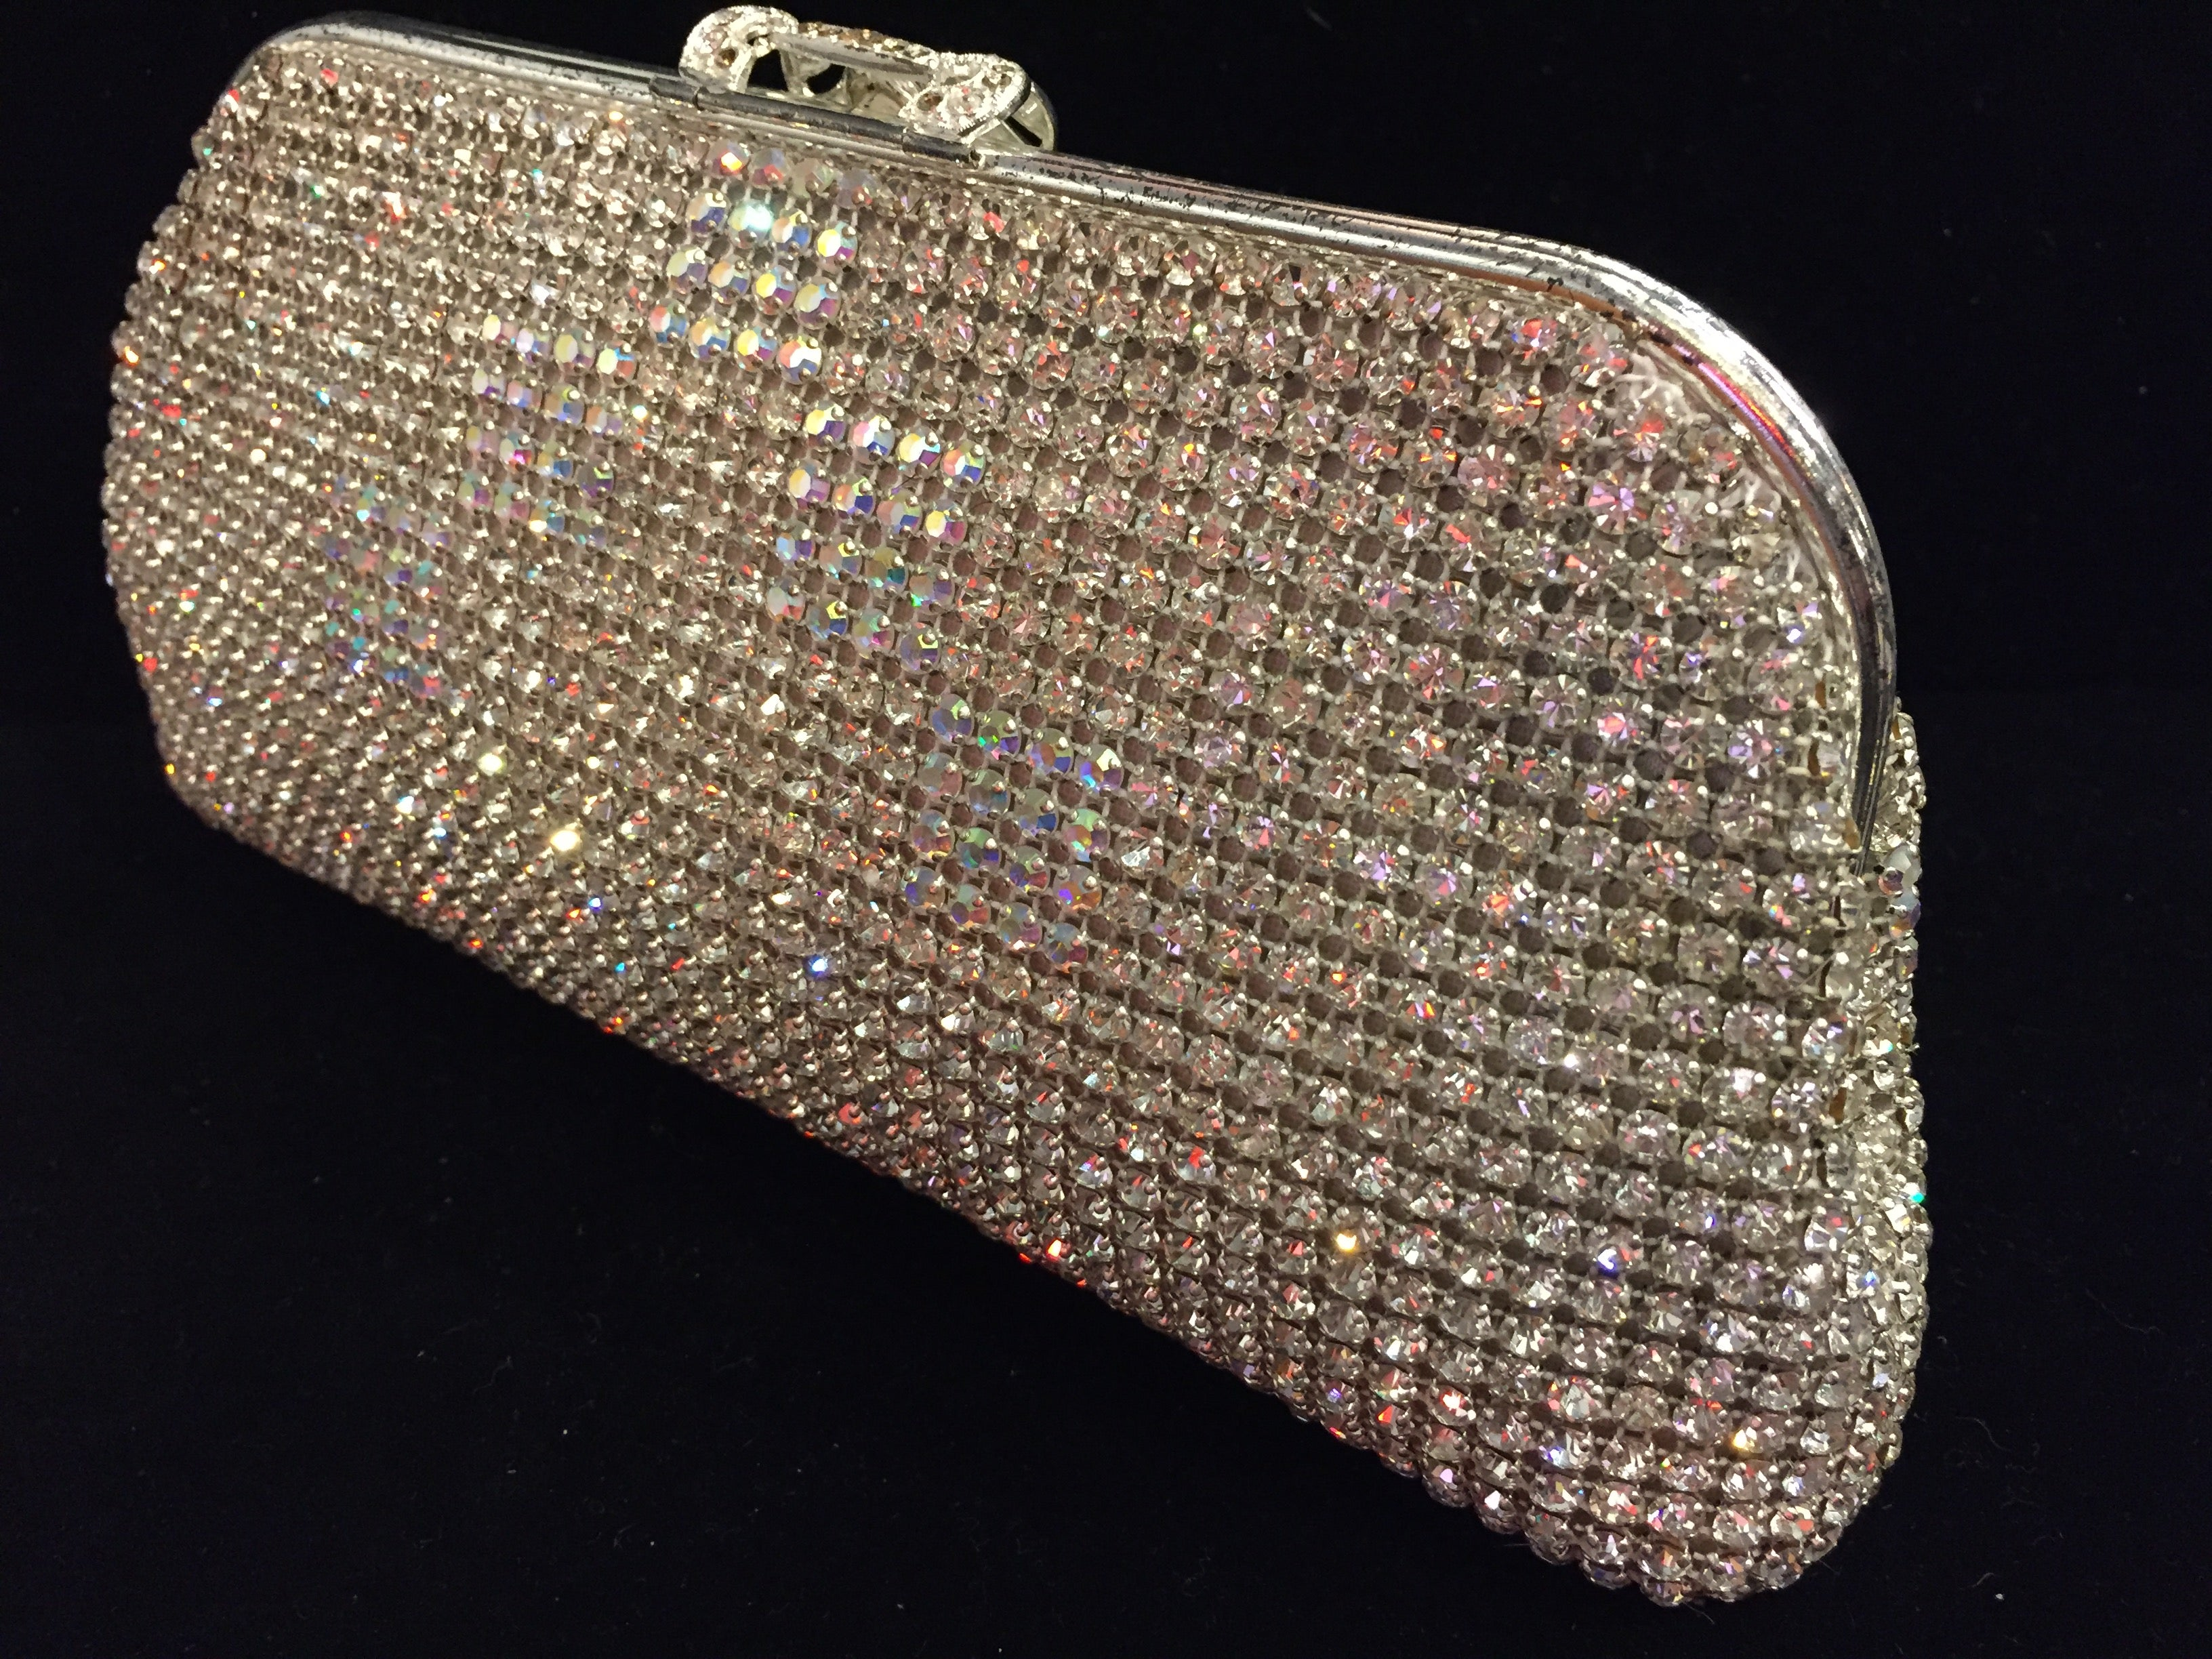 b0f0aa22109ec 1950s Johann Becker Rhinestone Covered Convertible Evening Bag For Sale at  1stdibs